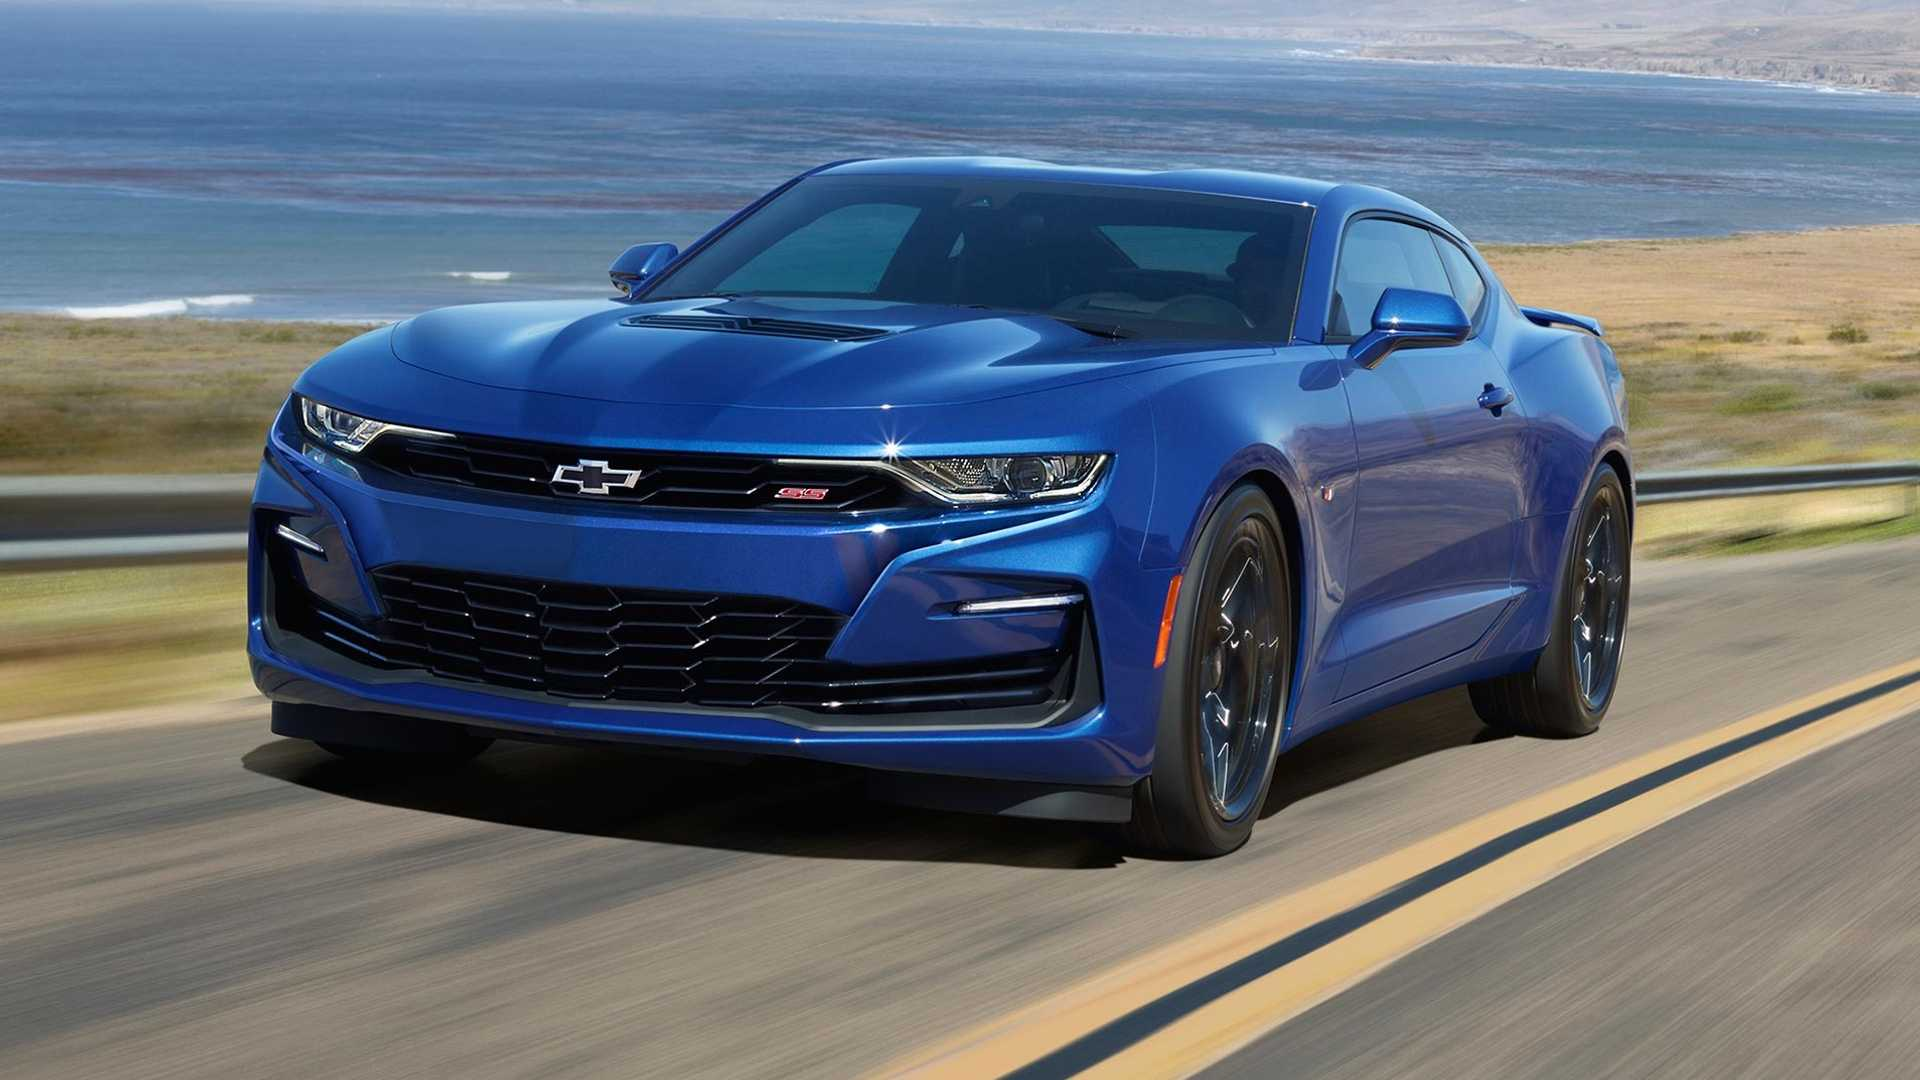 90 New 2020 Chevrolet Camaro Z28 Interior